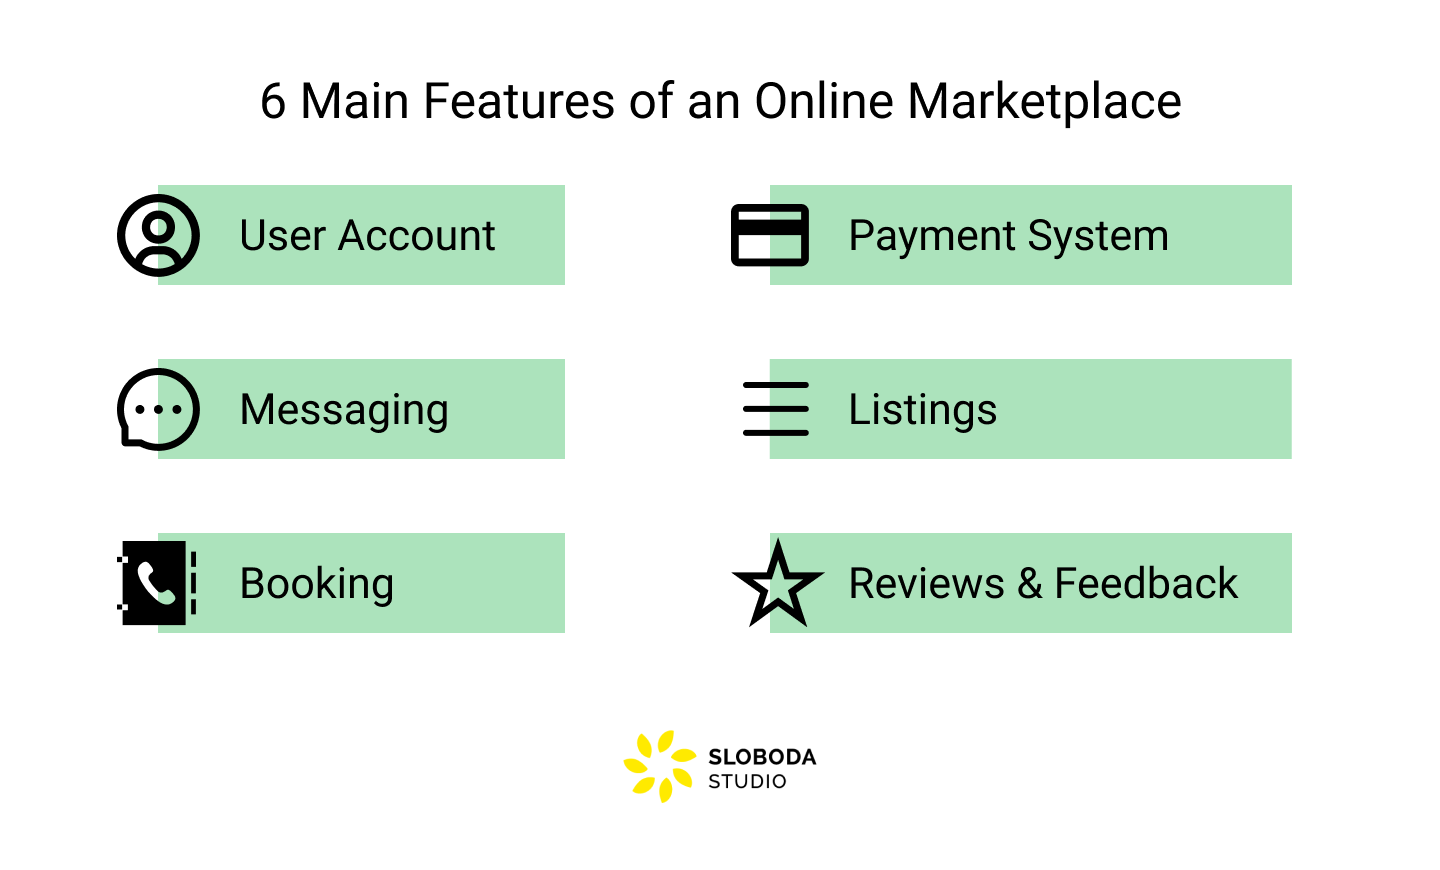 6 Main Features of an Online Marketplace